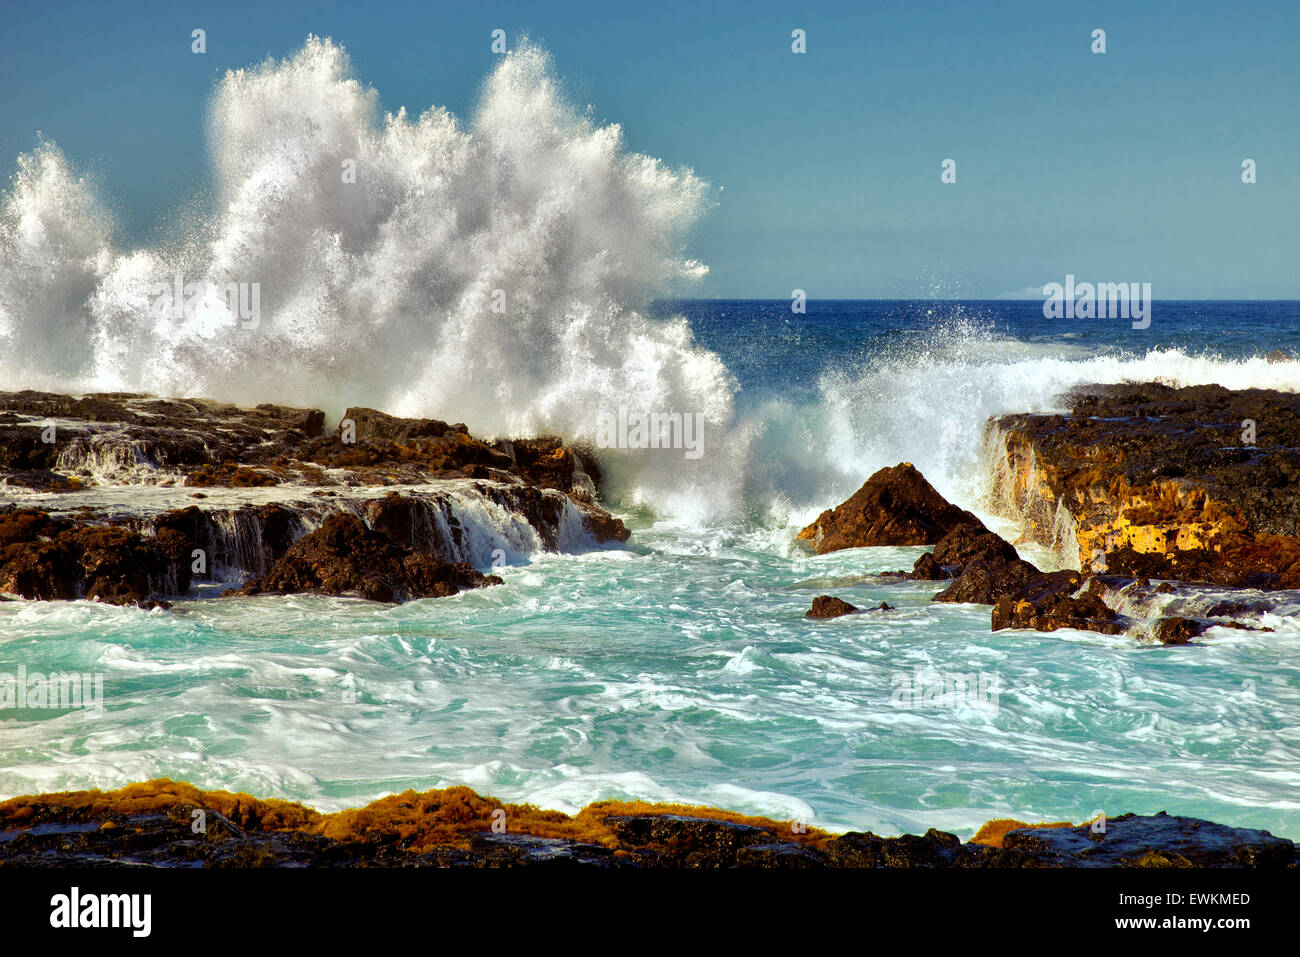 Brechende Welle. Hawaii, Big Island. Stockbild